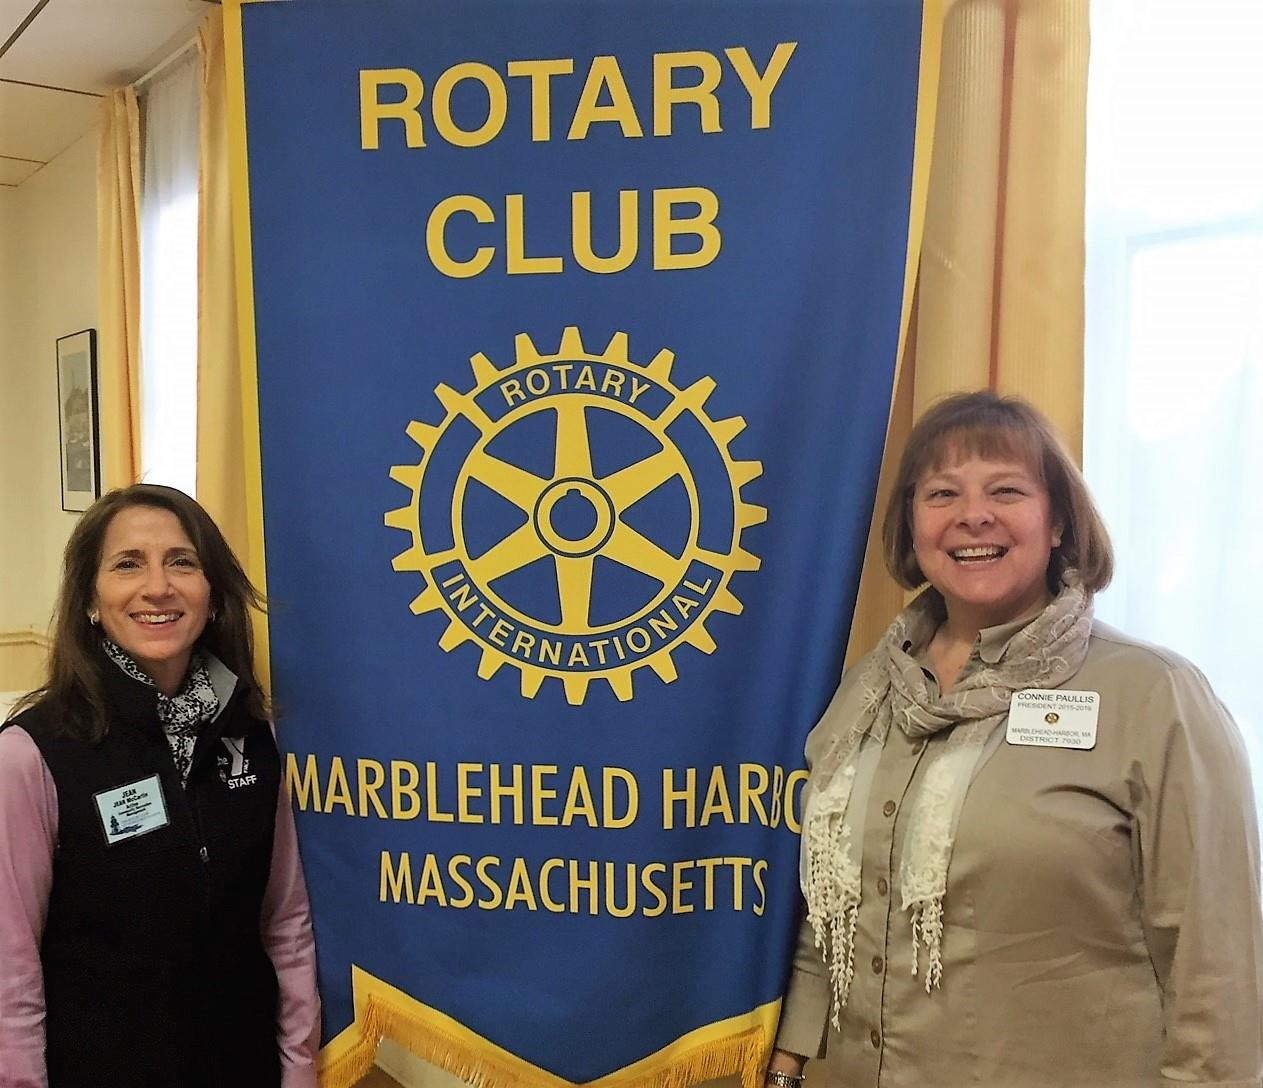 Rotary Club of Marblehead Harbor New Memberr